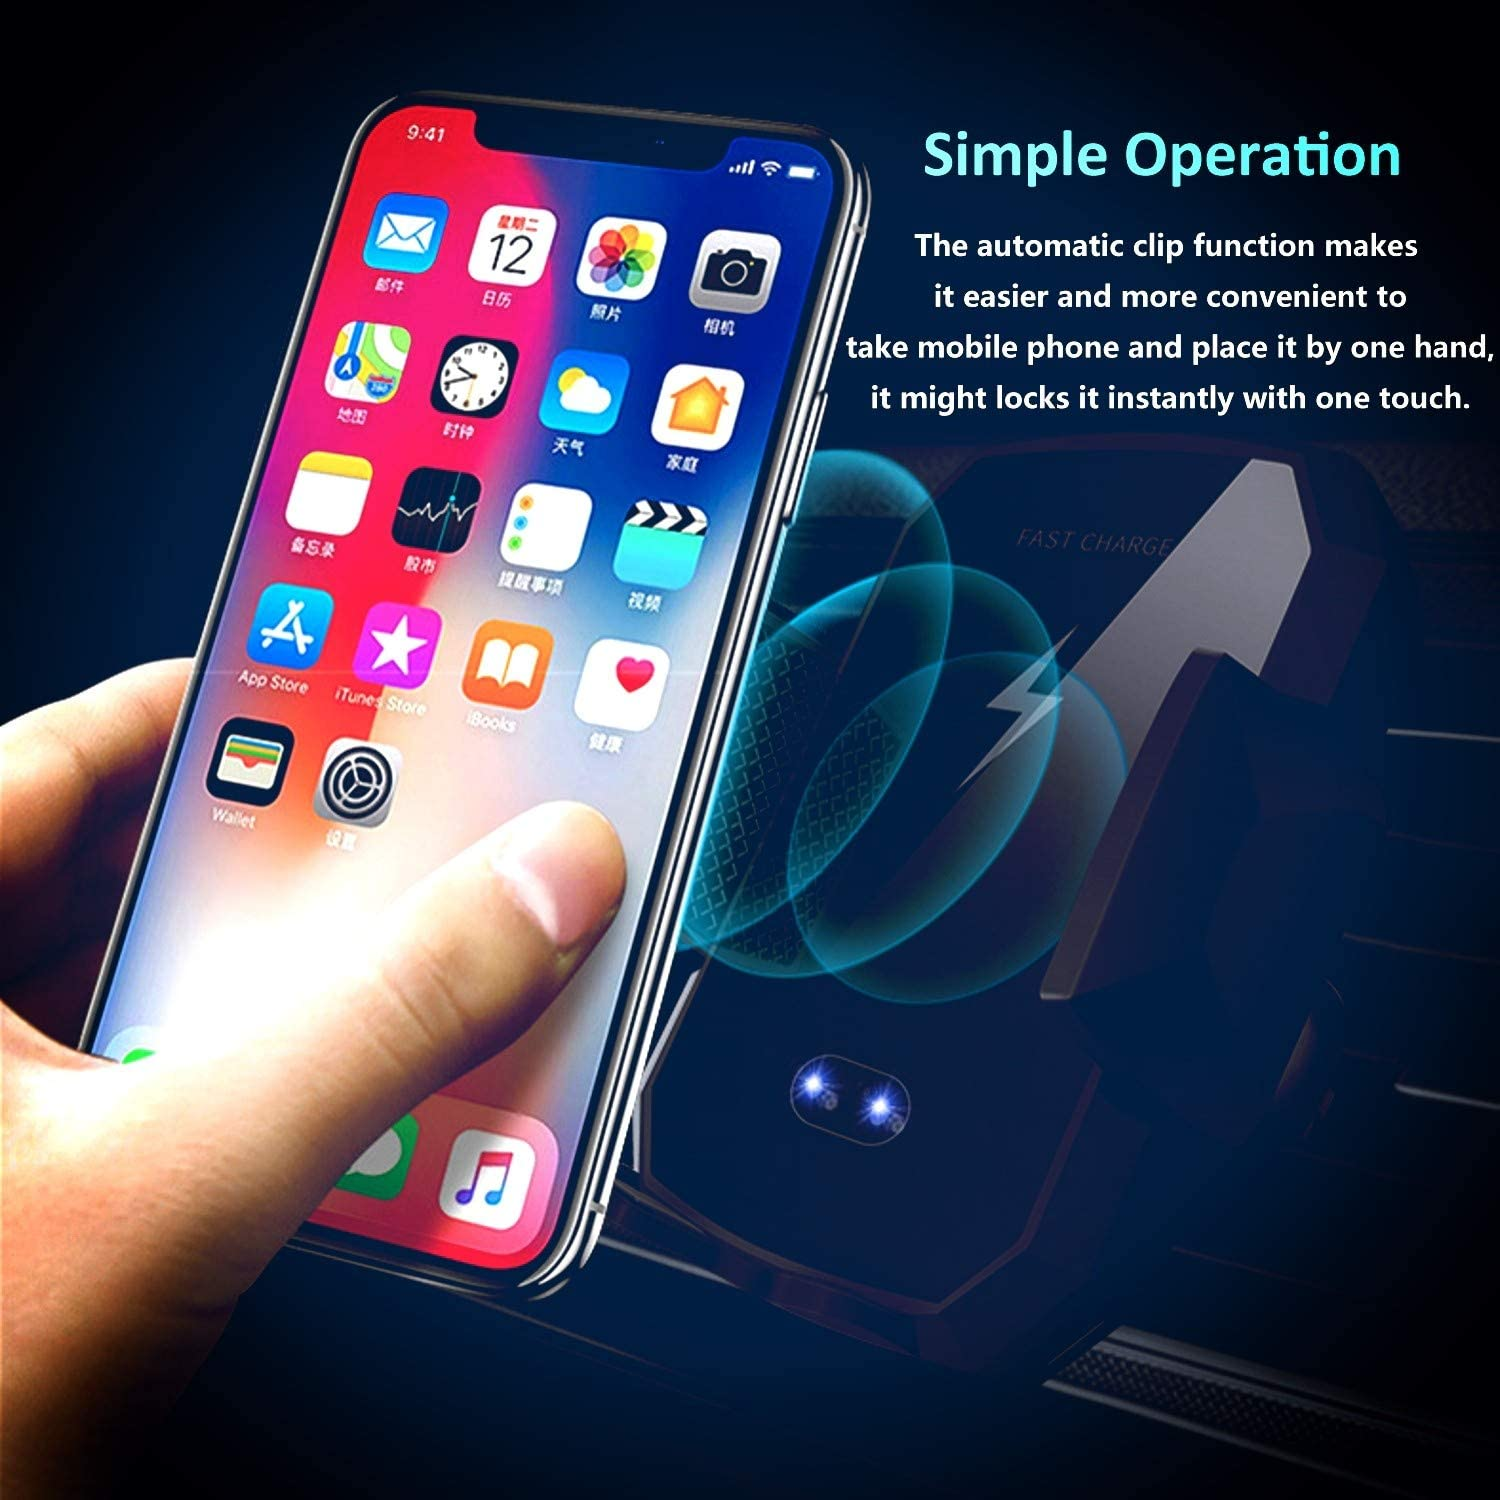 Black 2019 Updated Product 2.0,Wireless Car Charger,Phone Holder Mount,Wireless Vehicle Holder,Qi Charger,Infrared Sensor,Vehicle Charger,2in1 Smasher Holder,360 Degree Rotation,Qi Certification